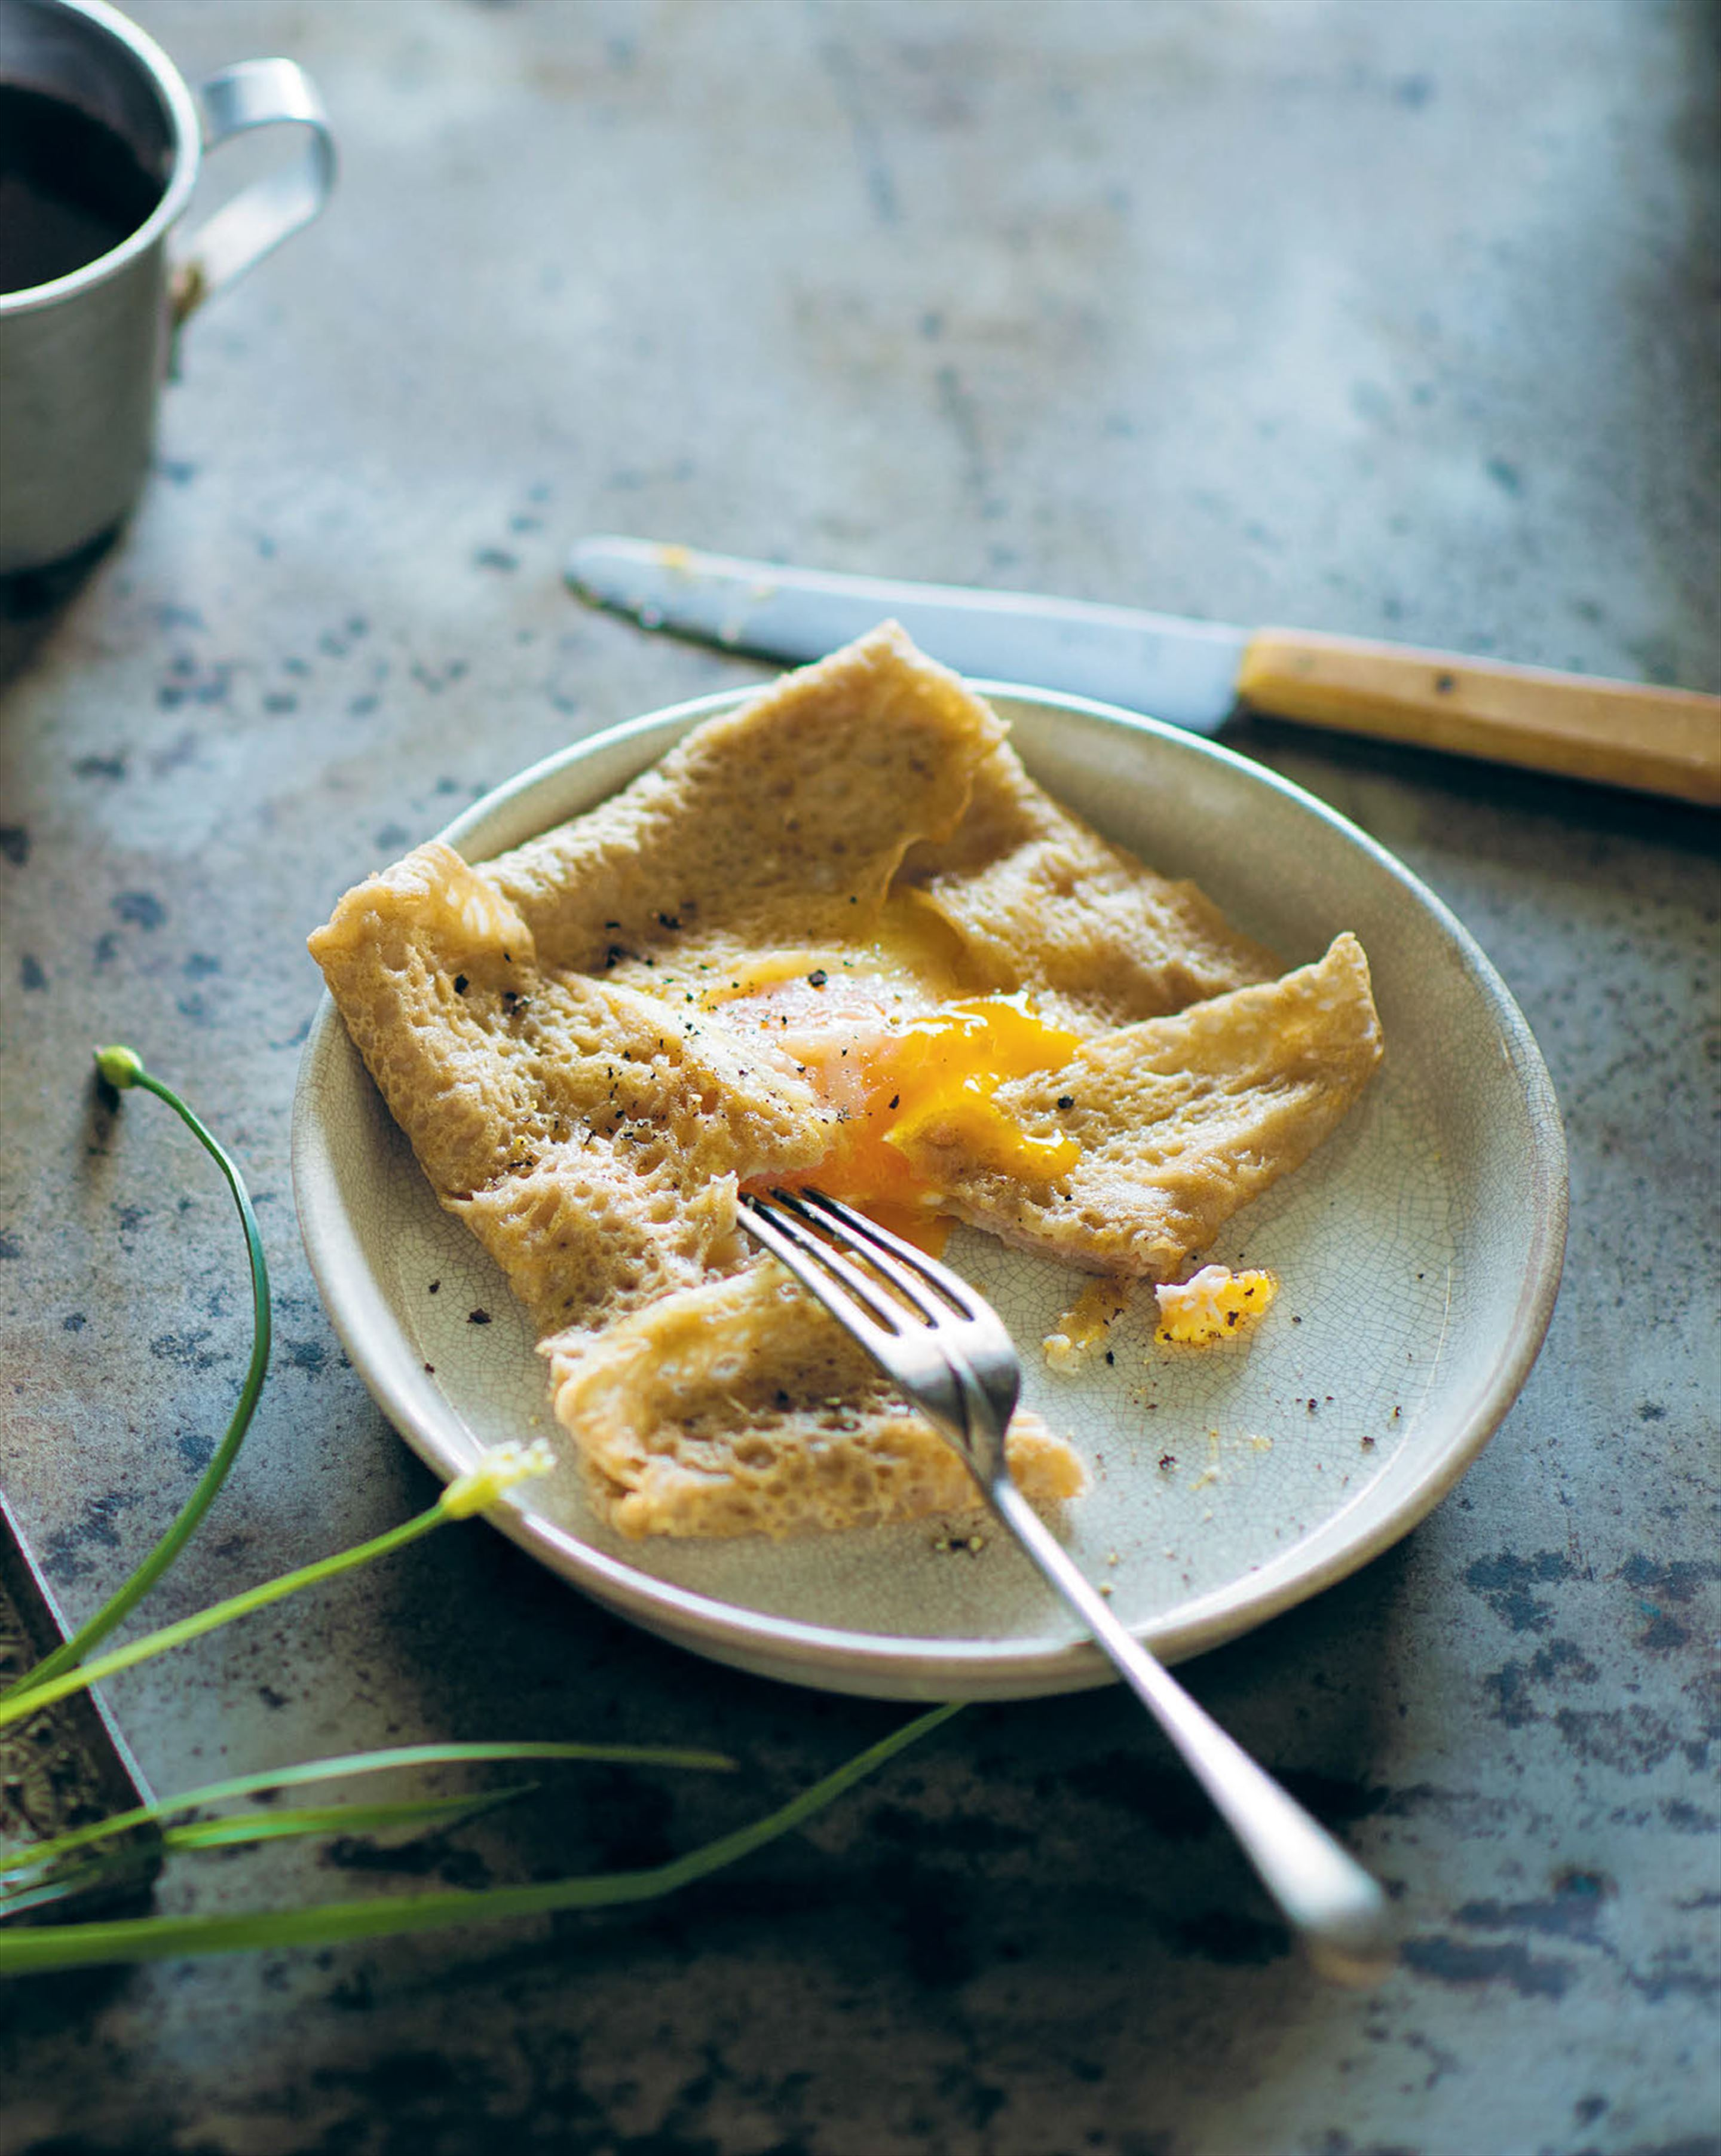 Galettes with ham & eggs